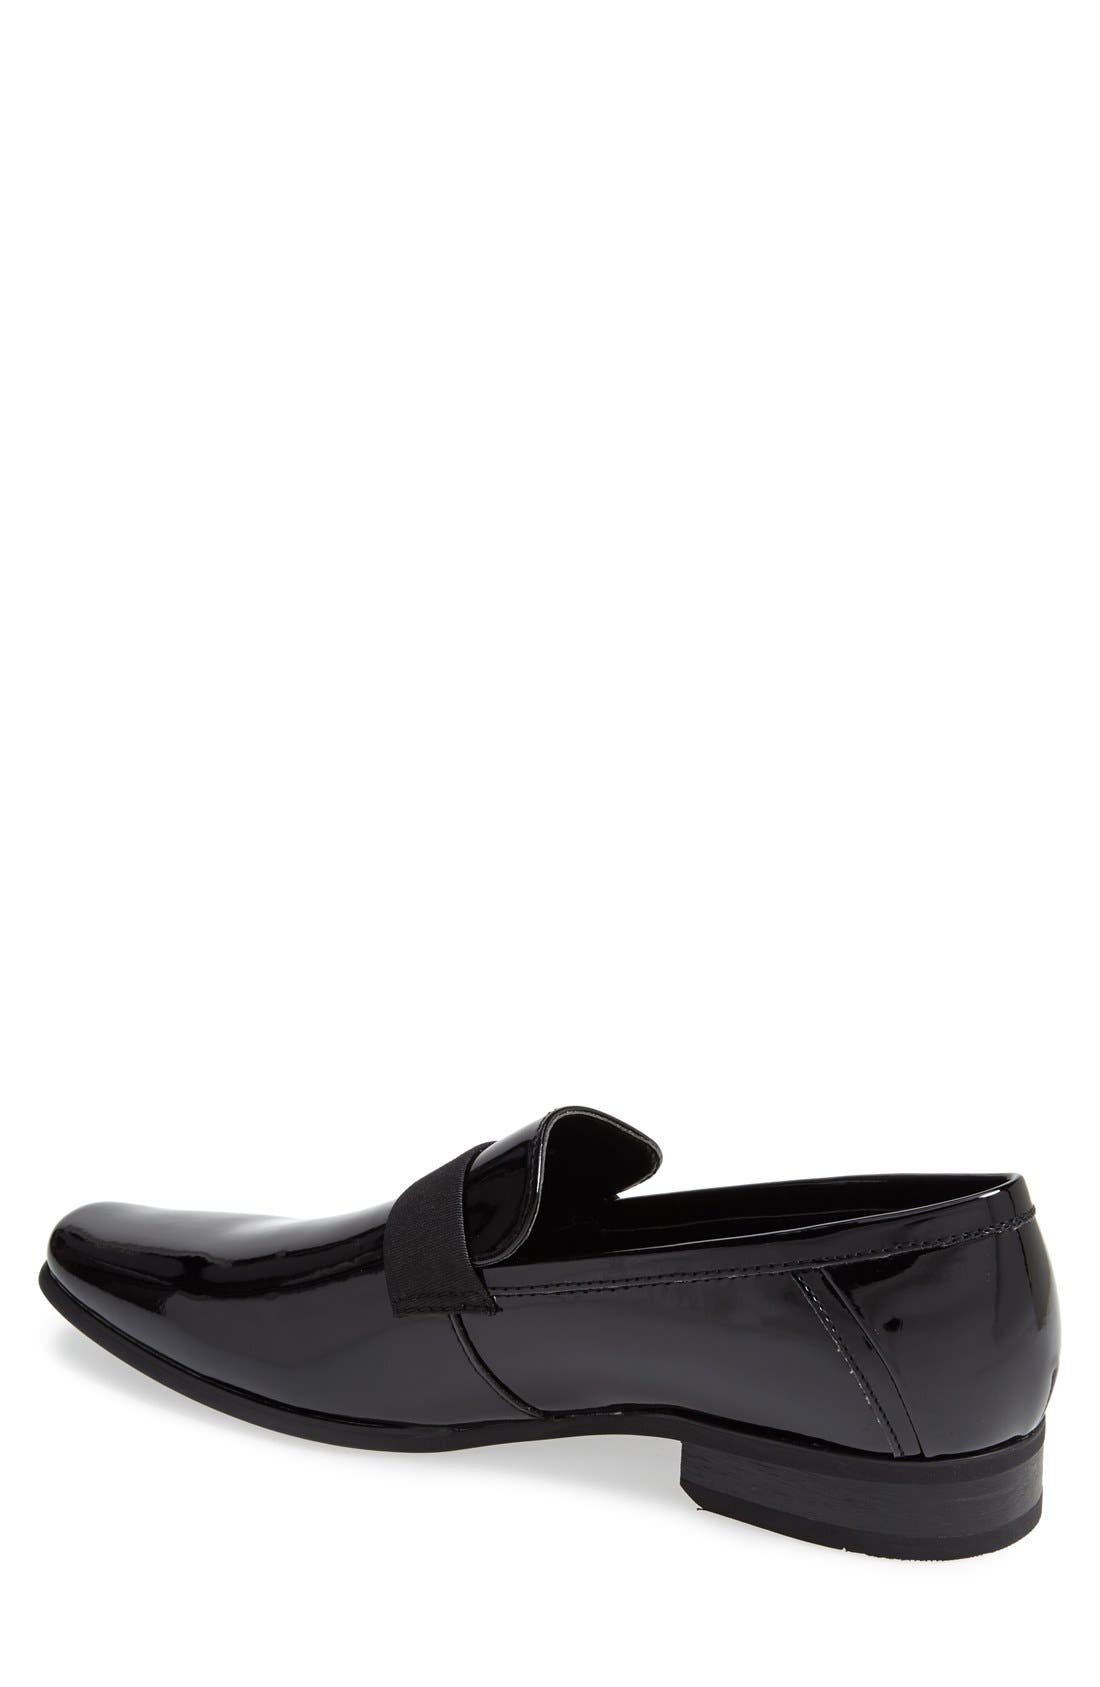 CALVIN KLEIN, 'Bernard' Venetian Loafer, Alternate thumbnail 4, color, BLACK